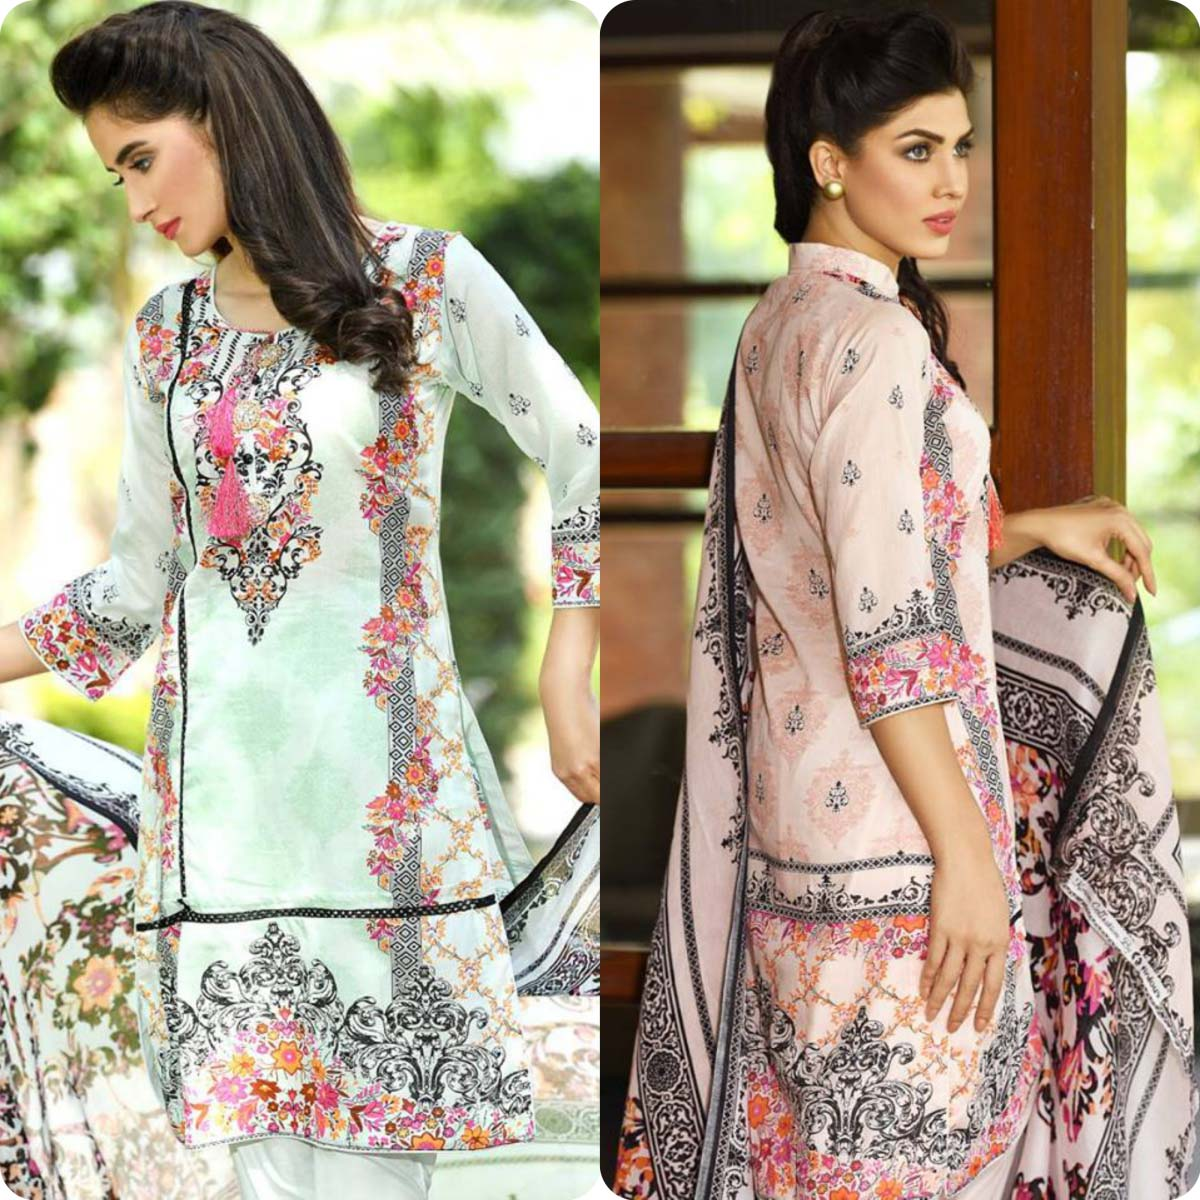 Firdous Lawn Latest Collection